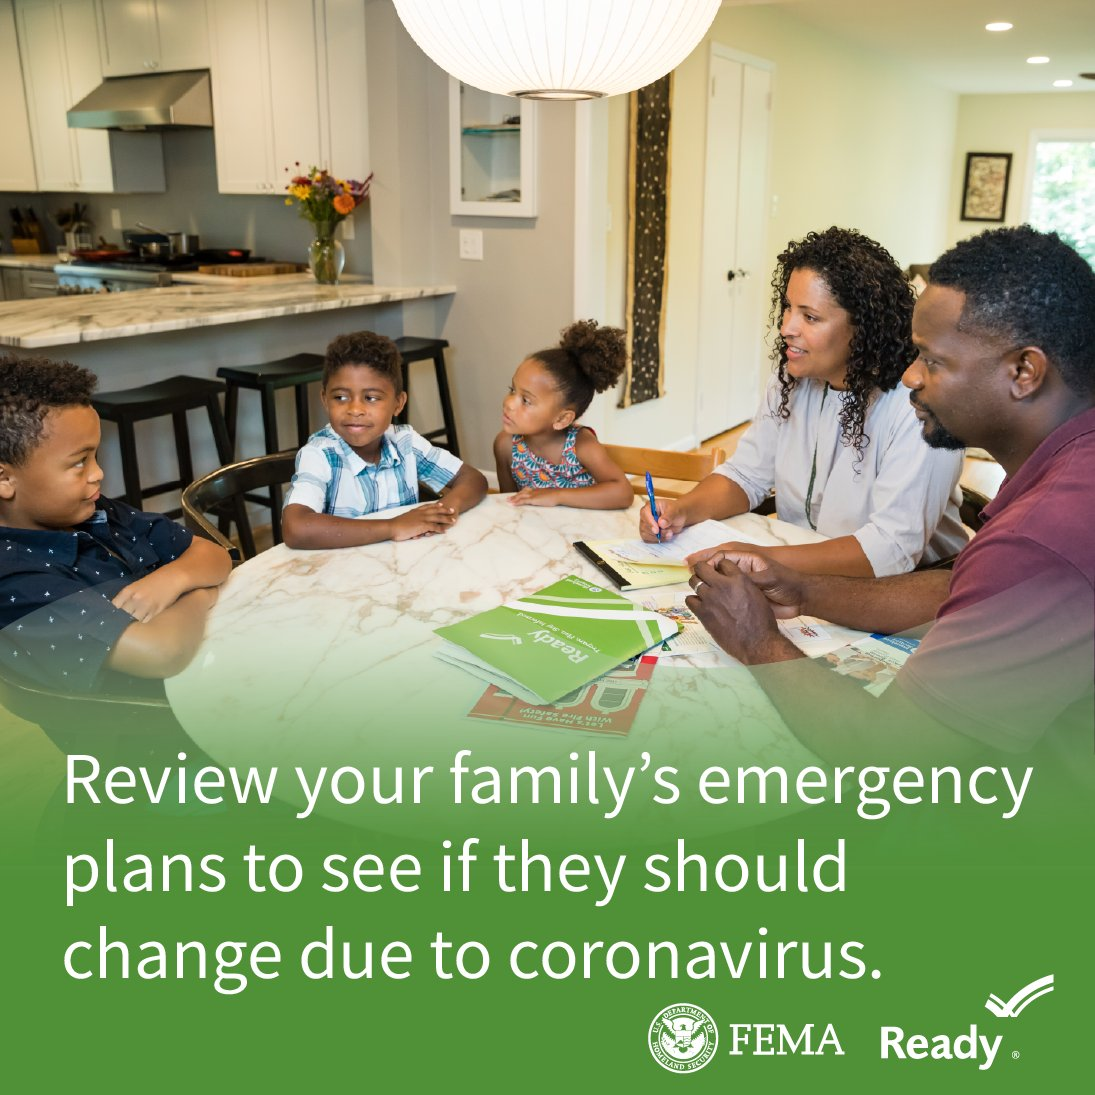 Be sure to review your family's emergency plans to see if they should change due to coronavirus.